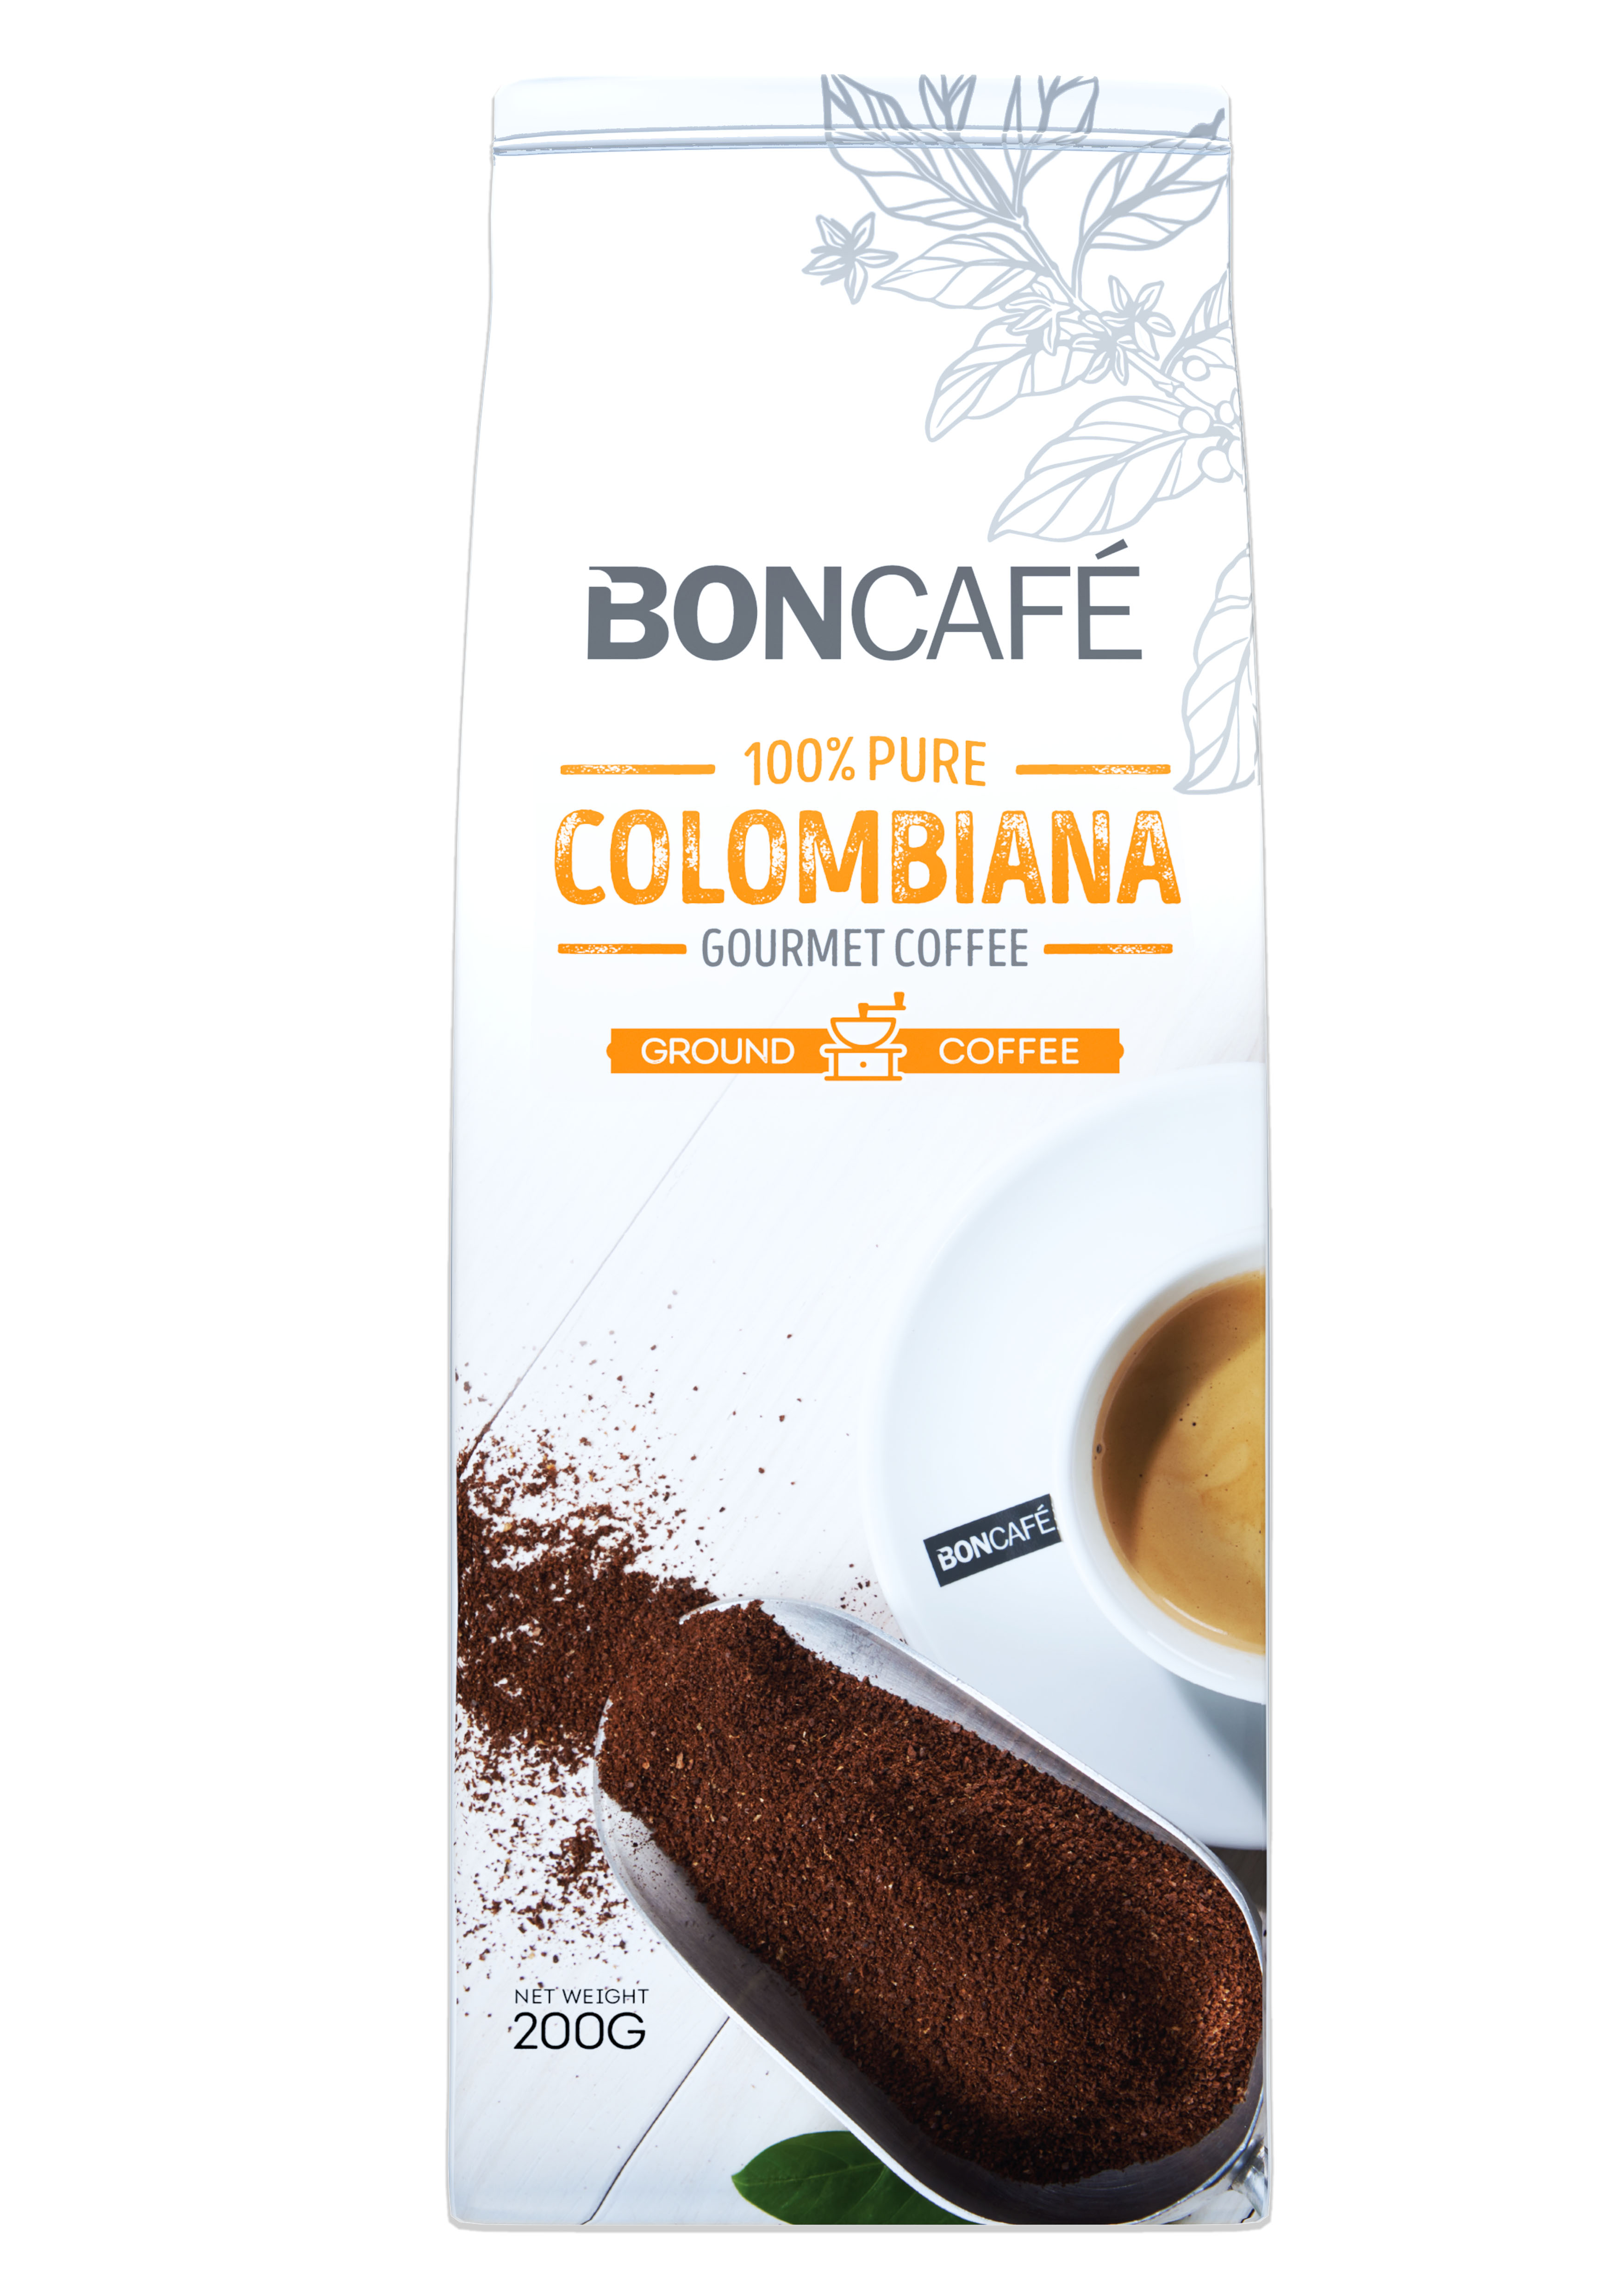 BONCAFÉ - GOURMET COLLECTION GROUND COFFEE: COLOMBIANA BLEND